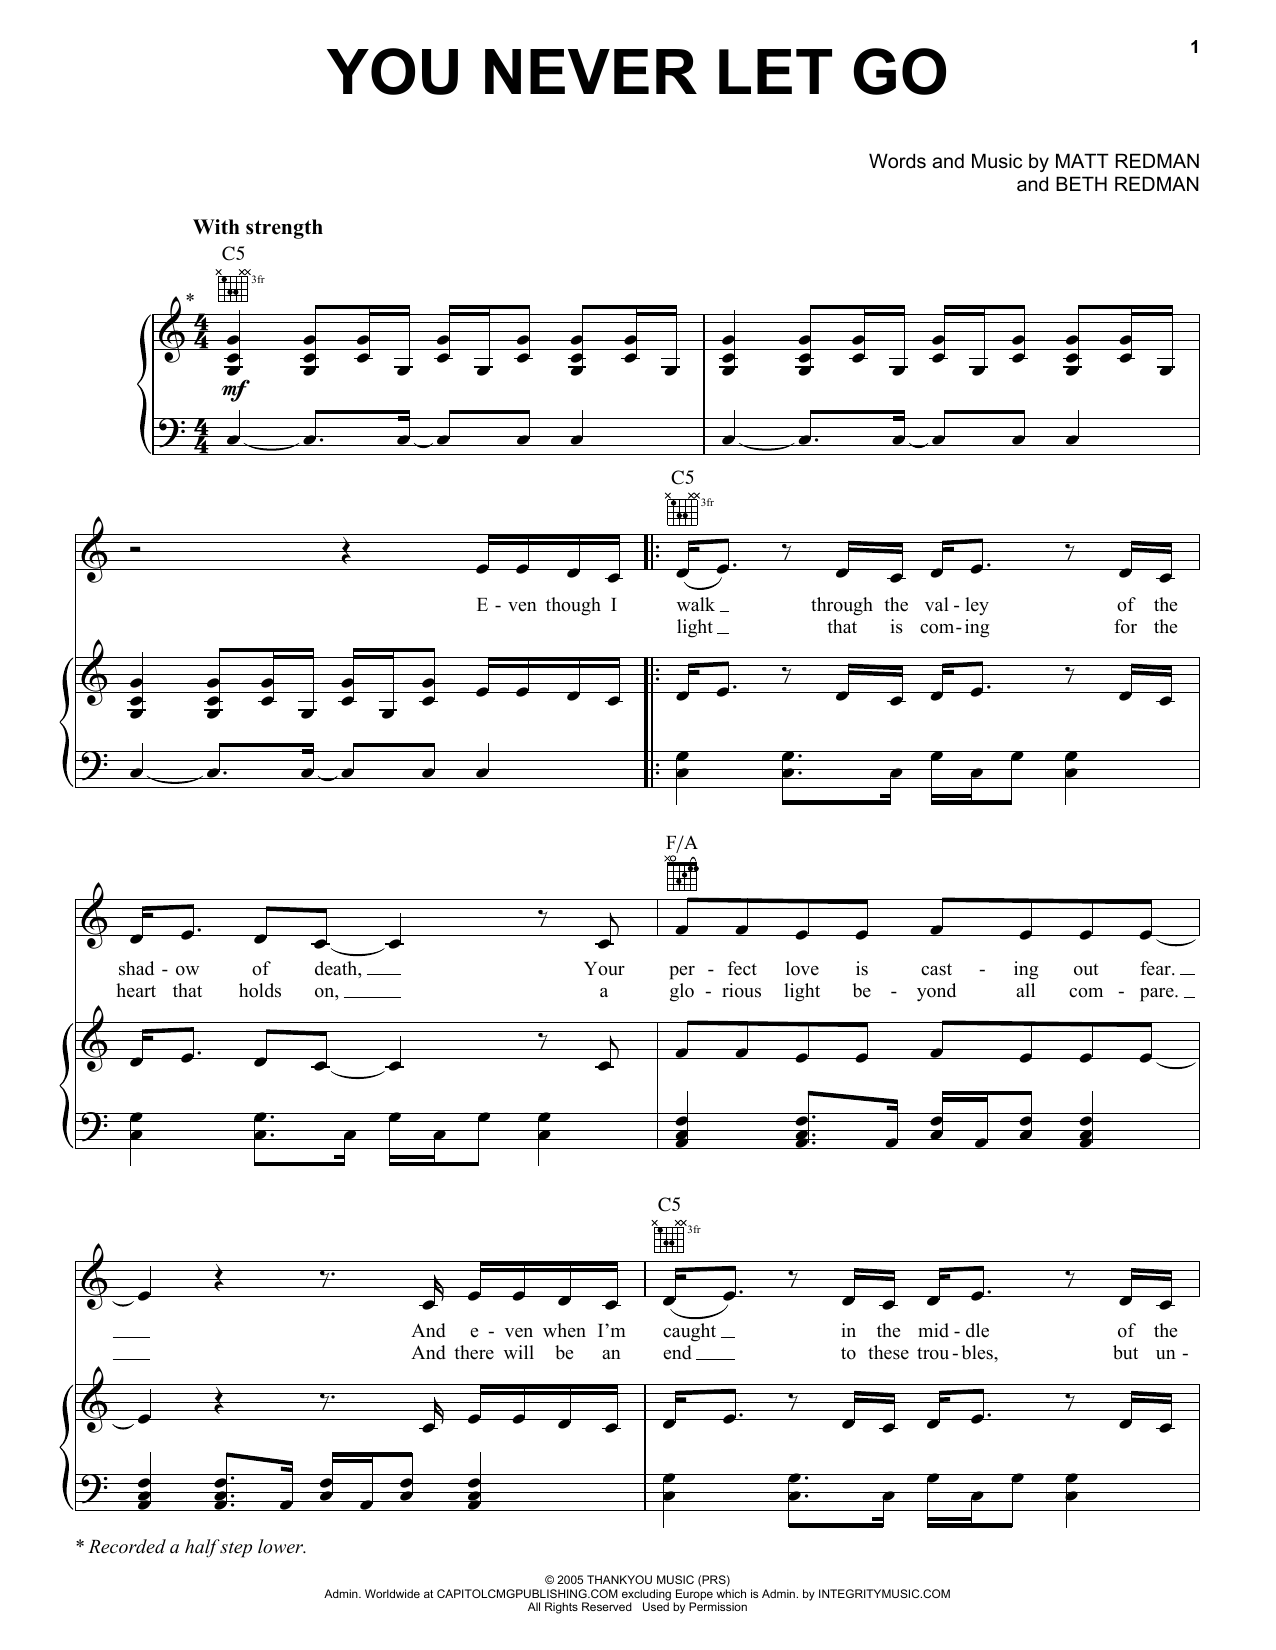 Matt Redman You Never Let Go sheet music notes and chords. Download Printable PDF.